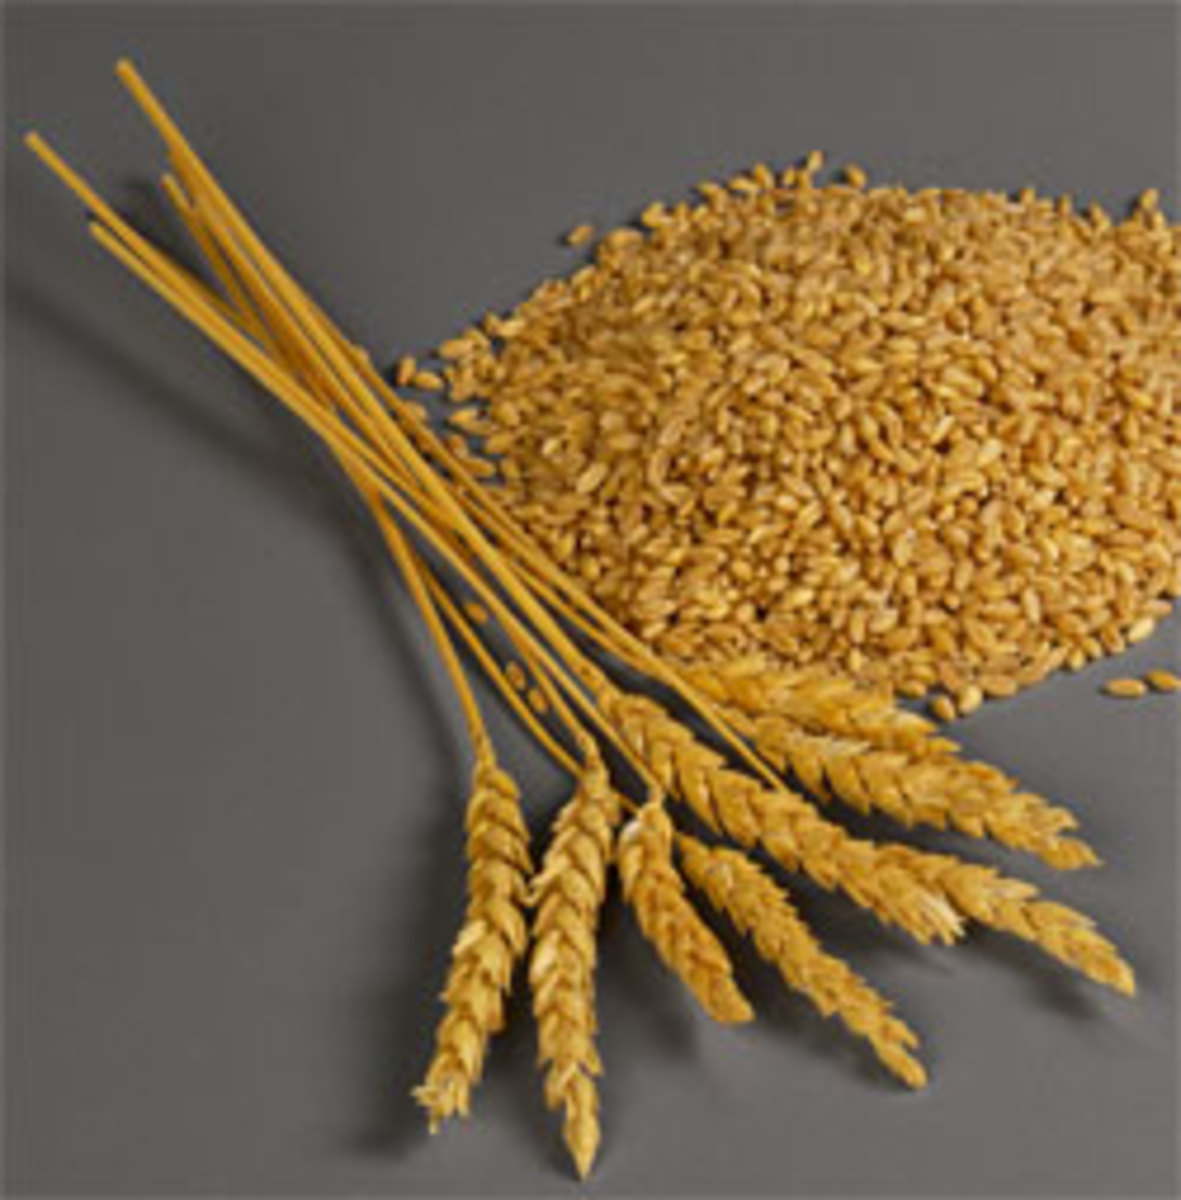 Healthy wheat and its seeds